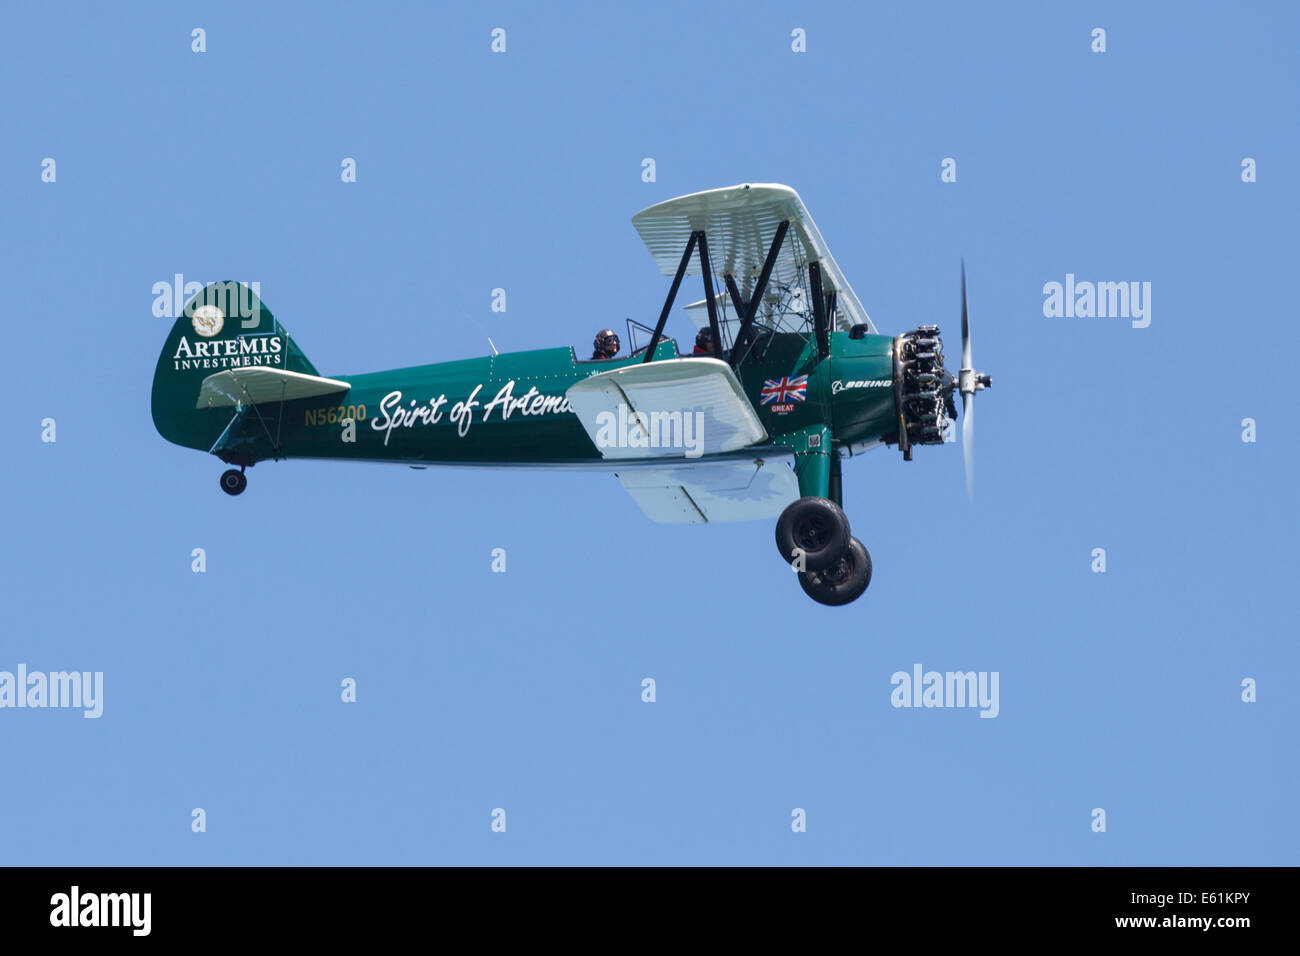 Spirit of Artemis Biplane with pilots flying over Cowes, Isle of Wight - Stock Image